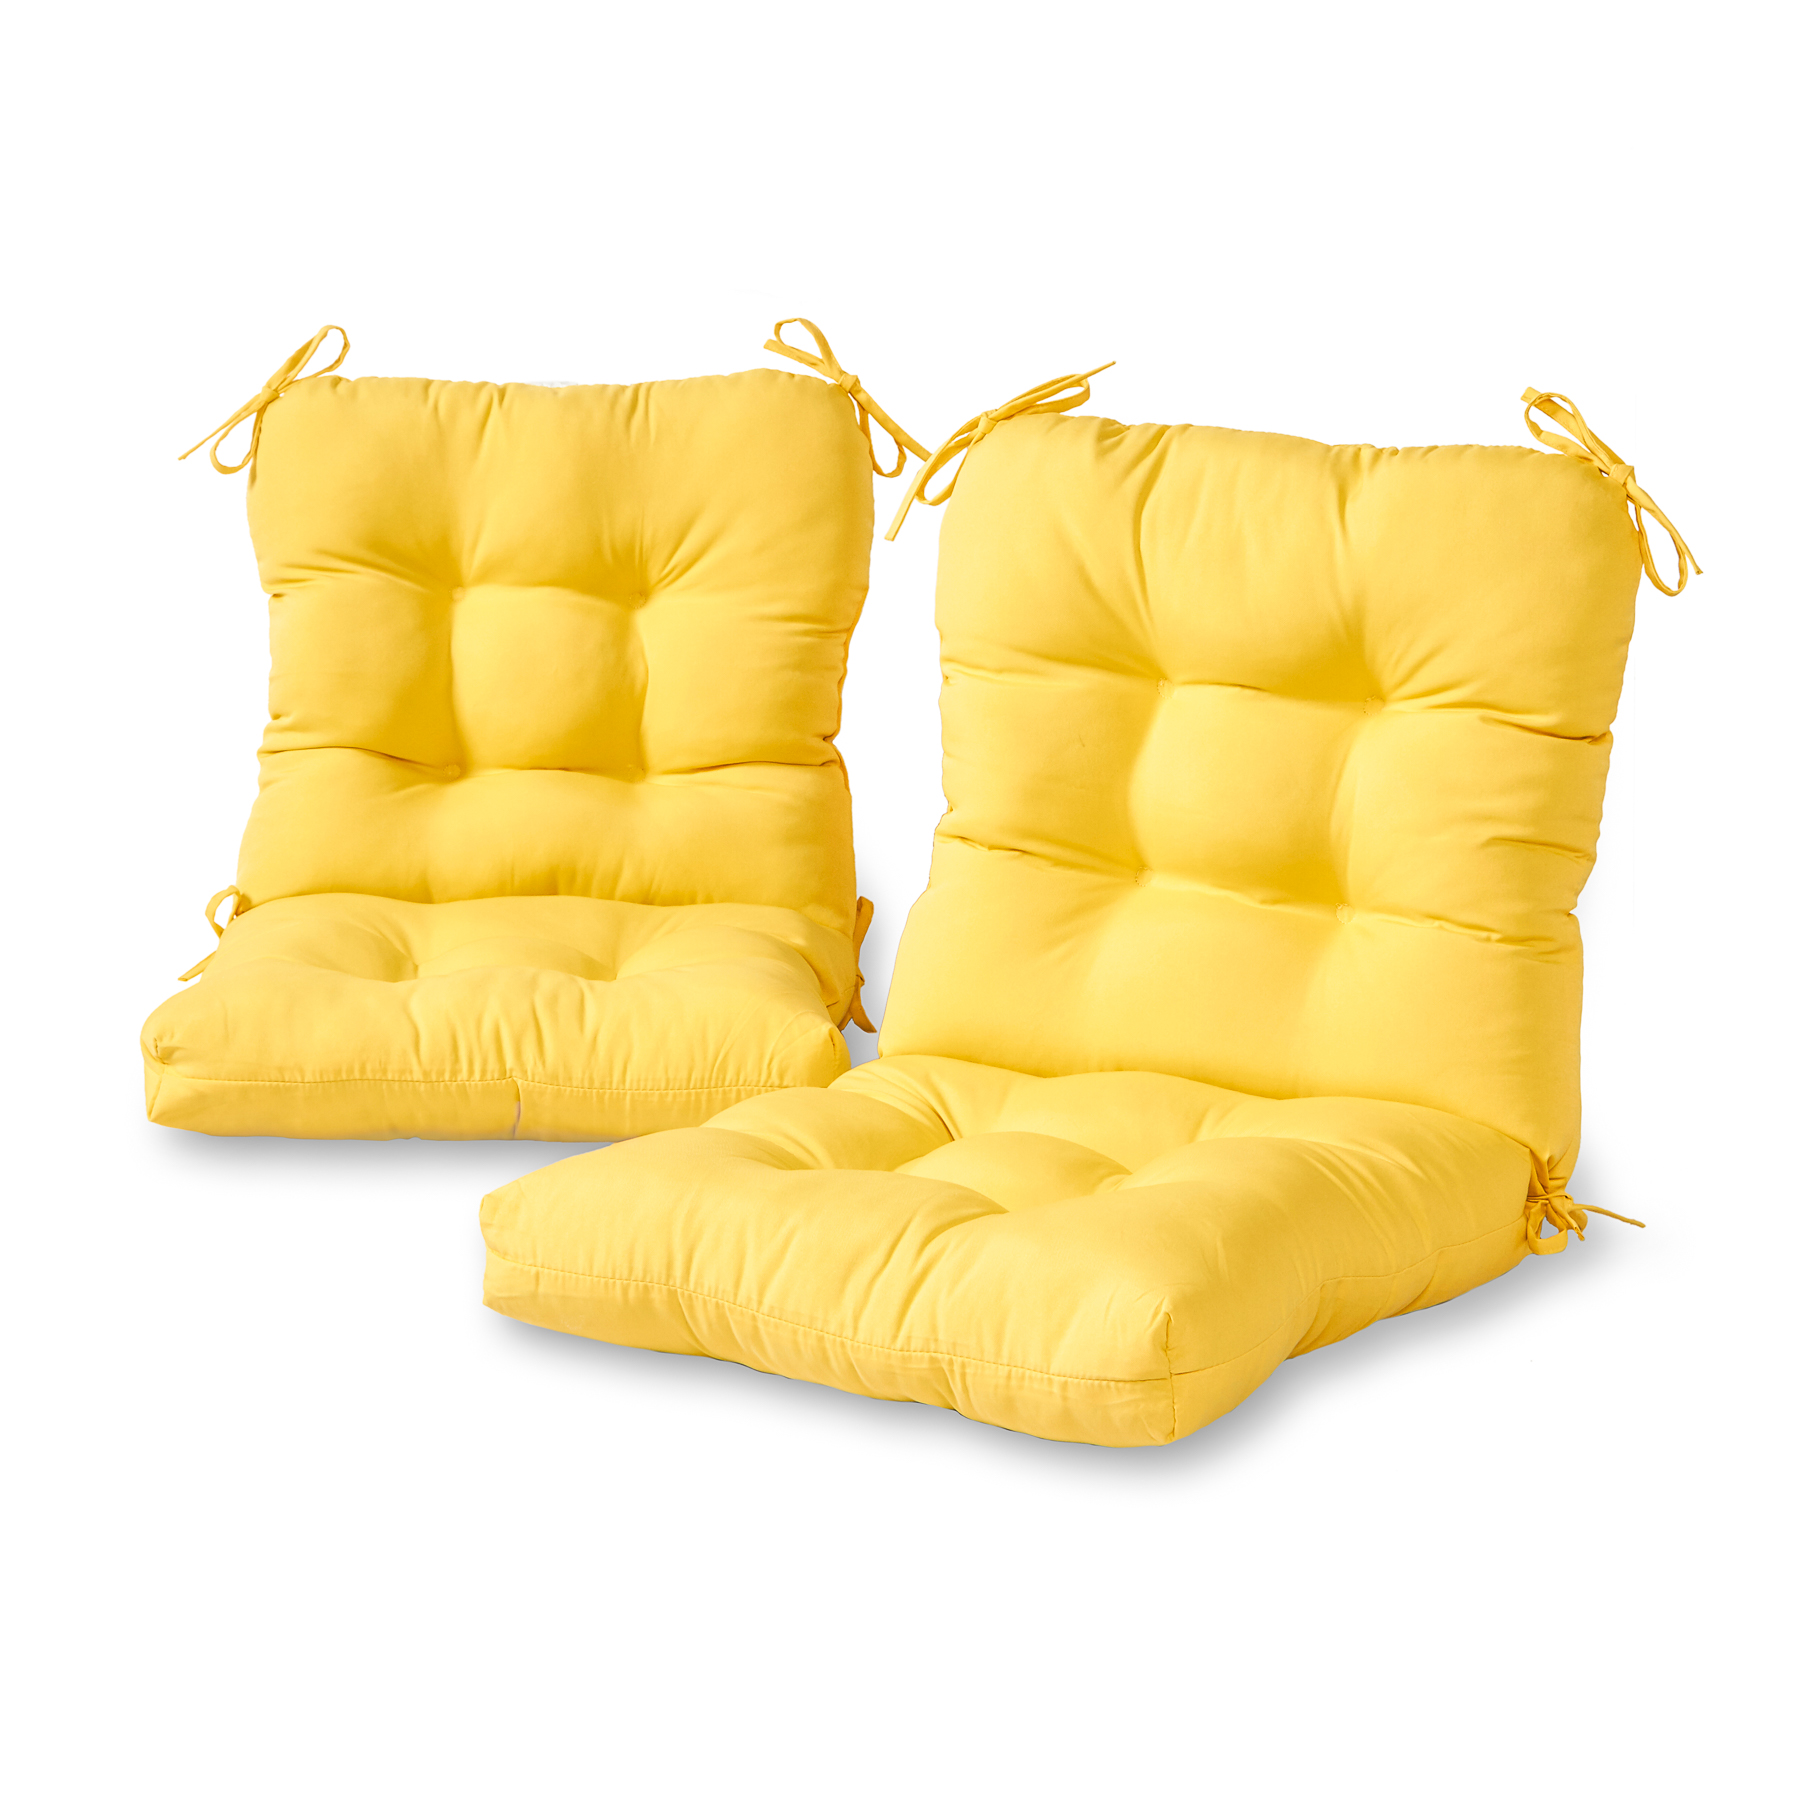 X 21 Outdoor 21 Furniture Cushions